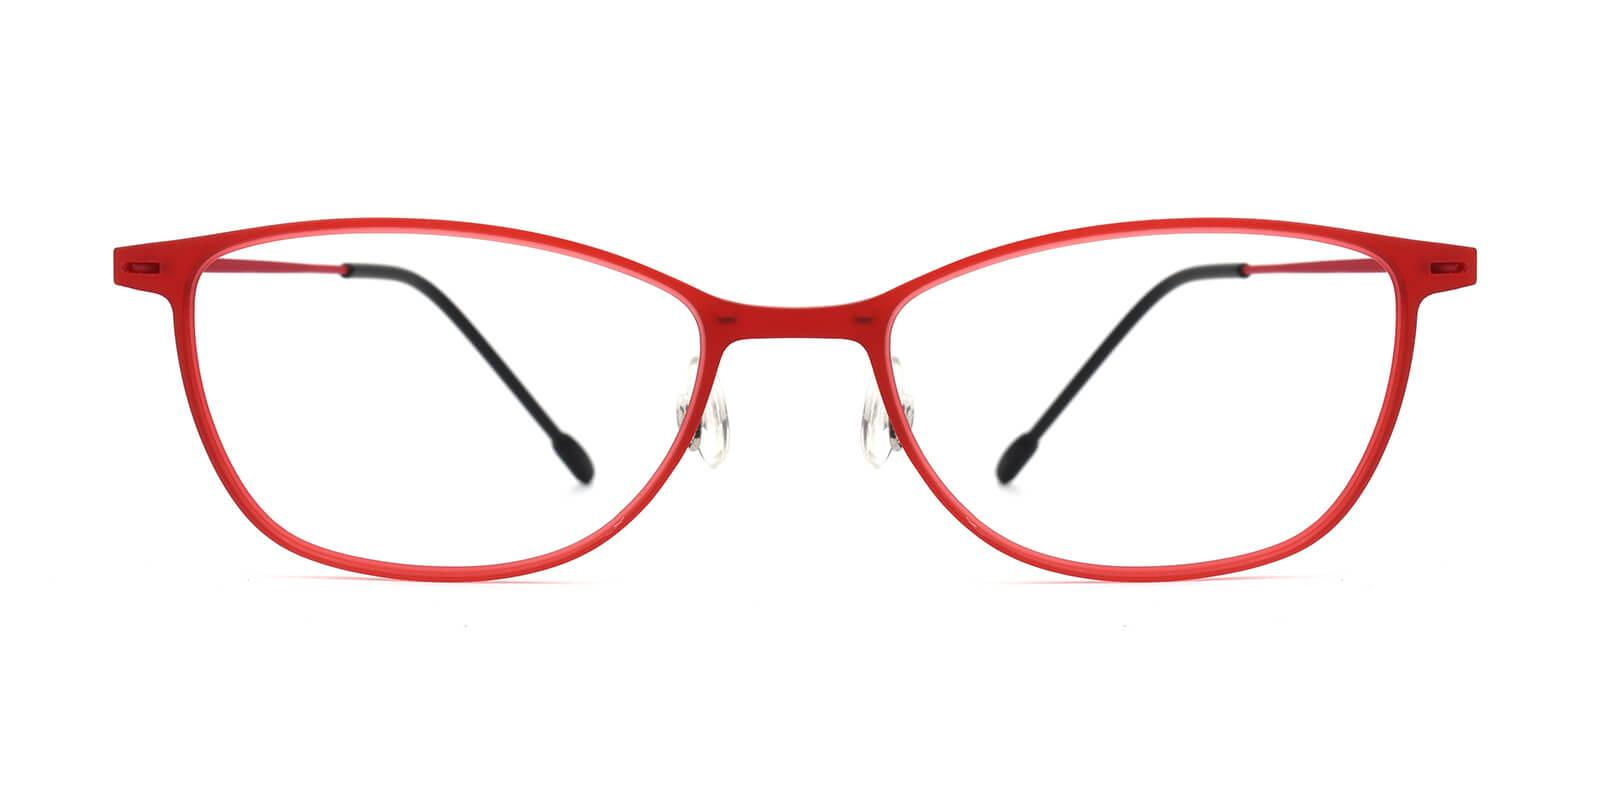 Pridgen-Red-Rectangle / Cat-Combination-Eyeglasses-detail